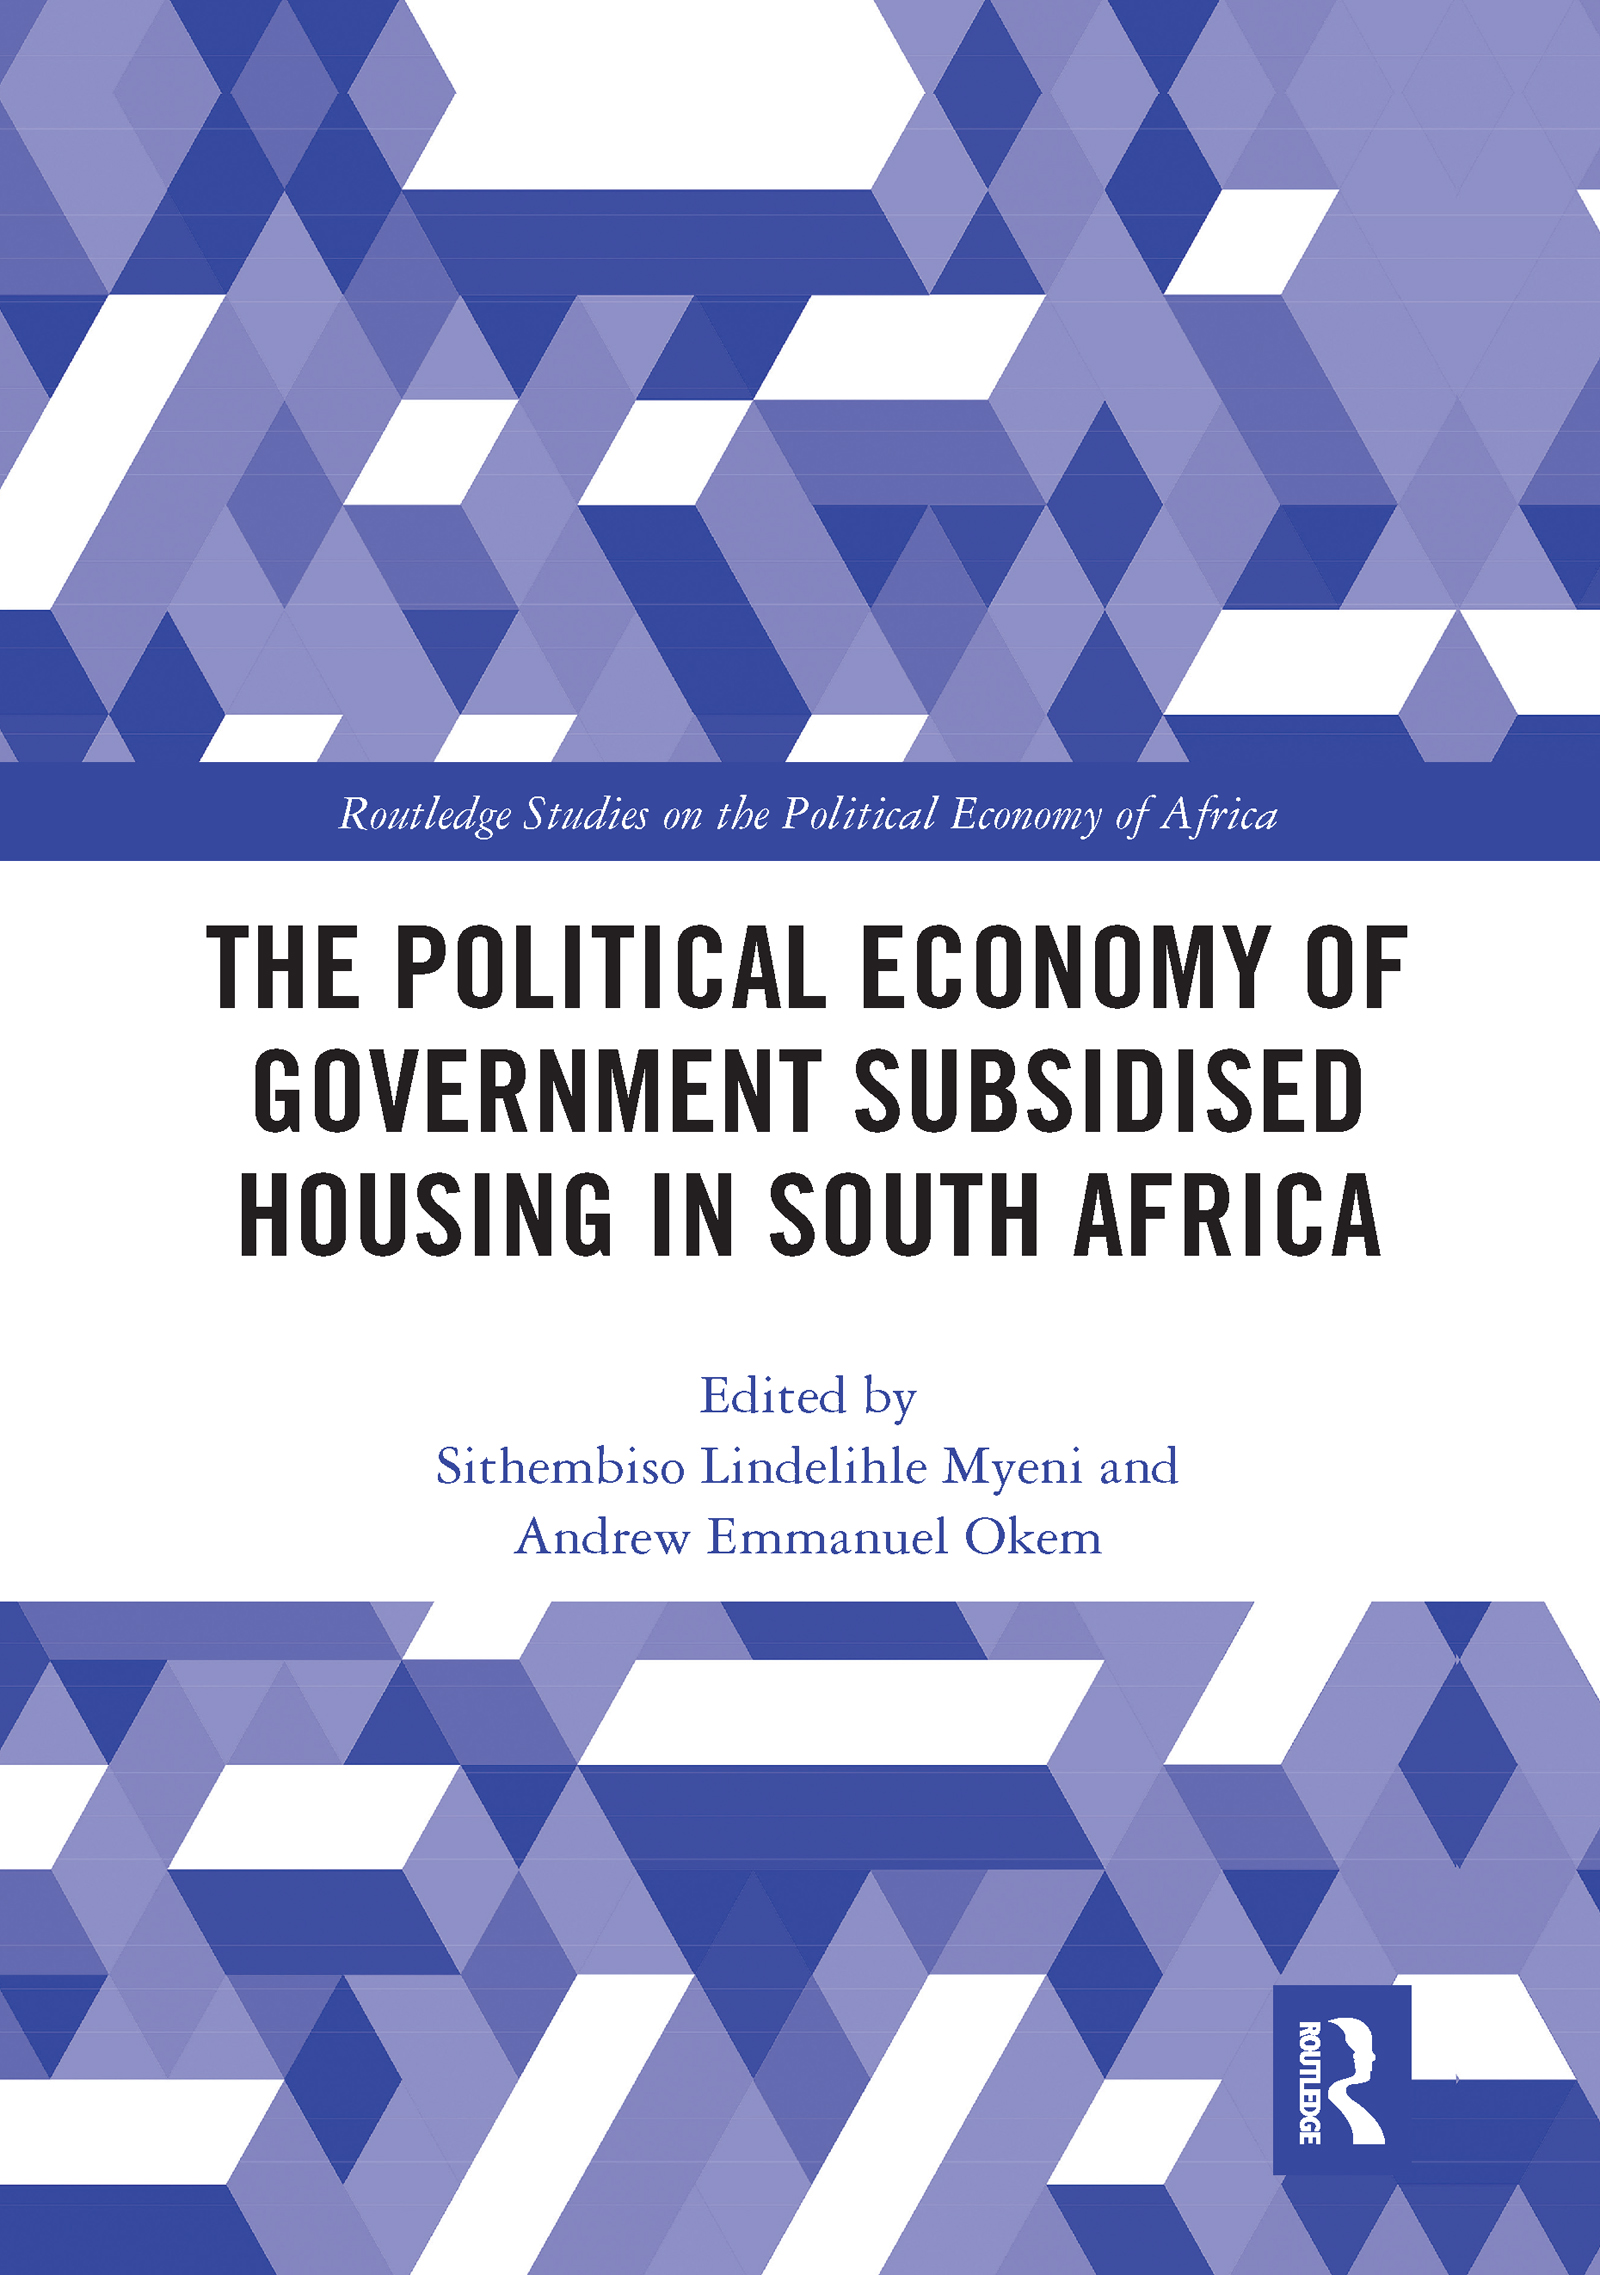 The Political Economy of Government Subsidised Housing in South Africa